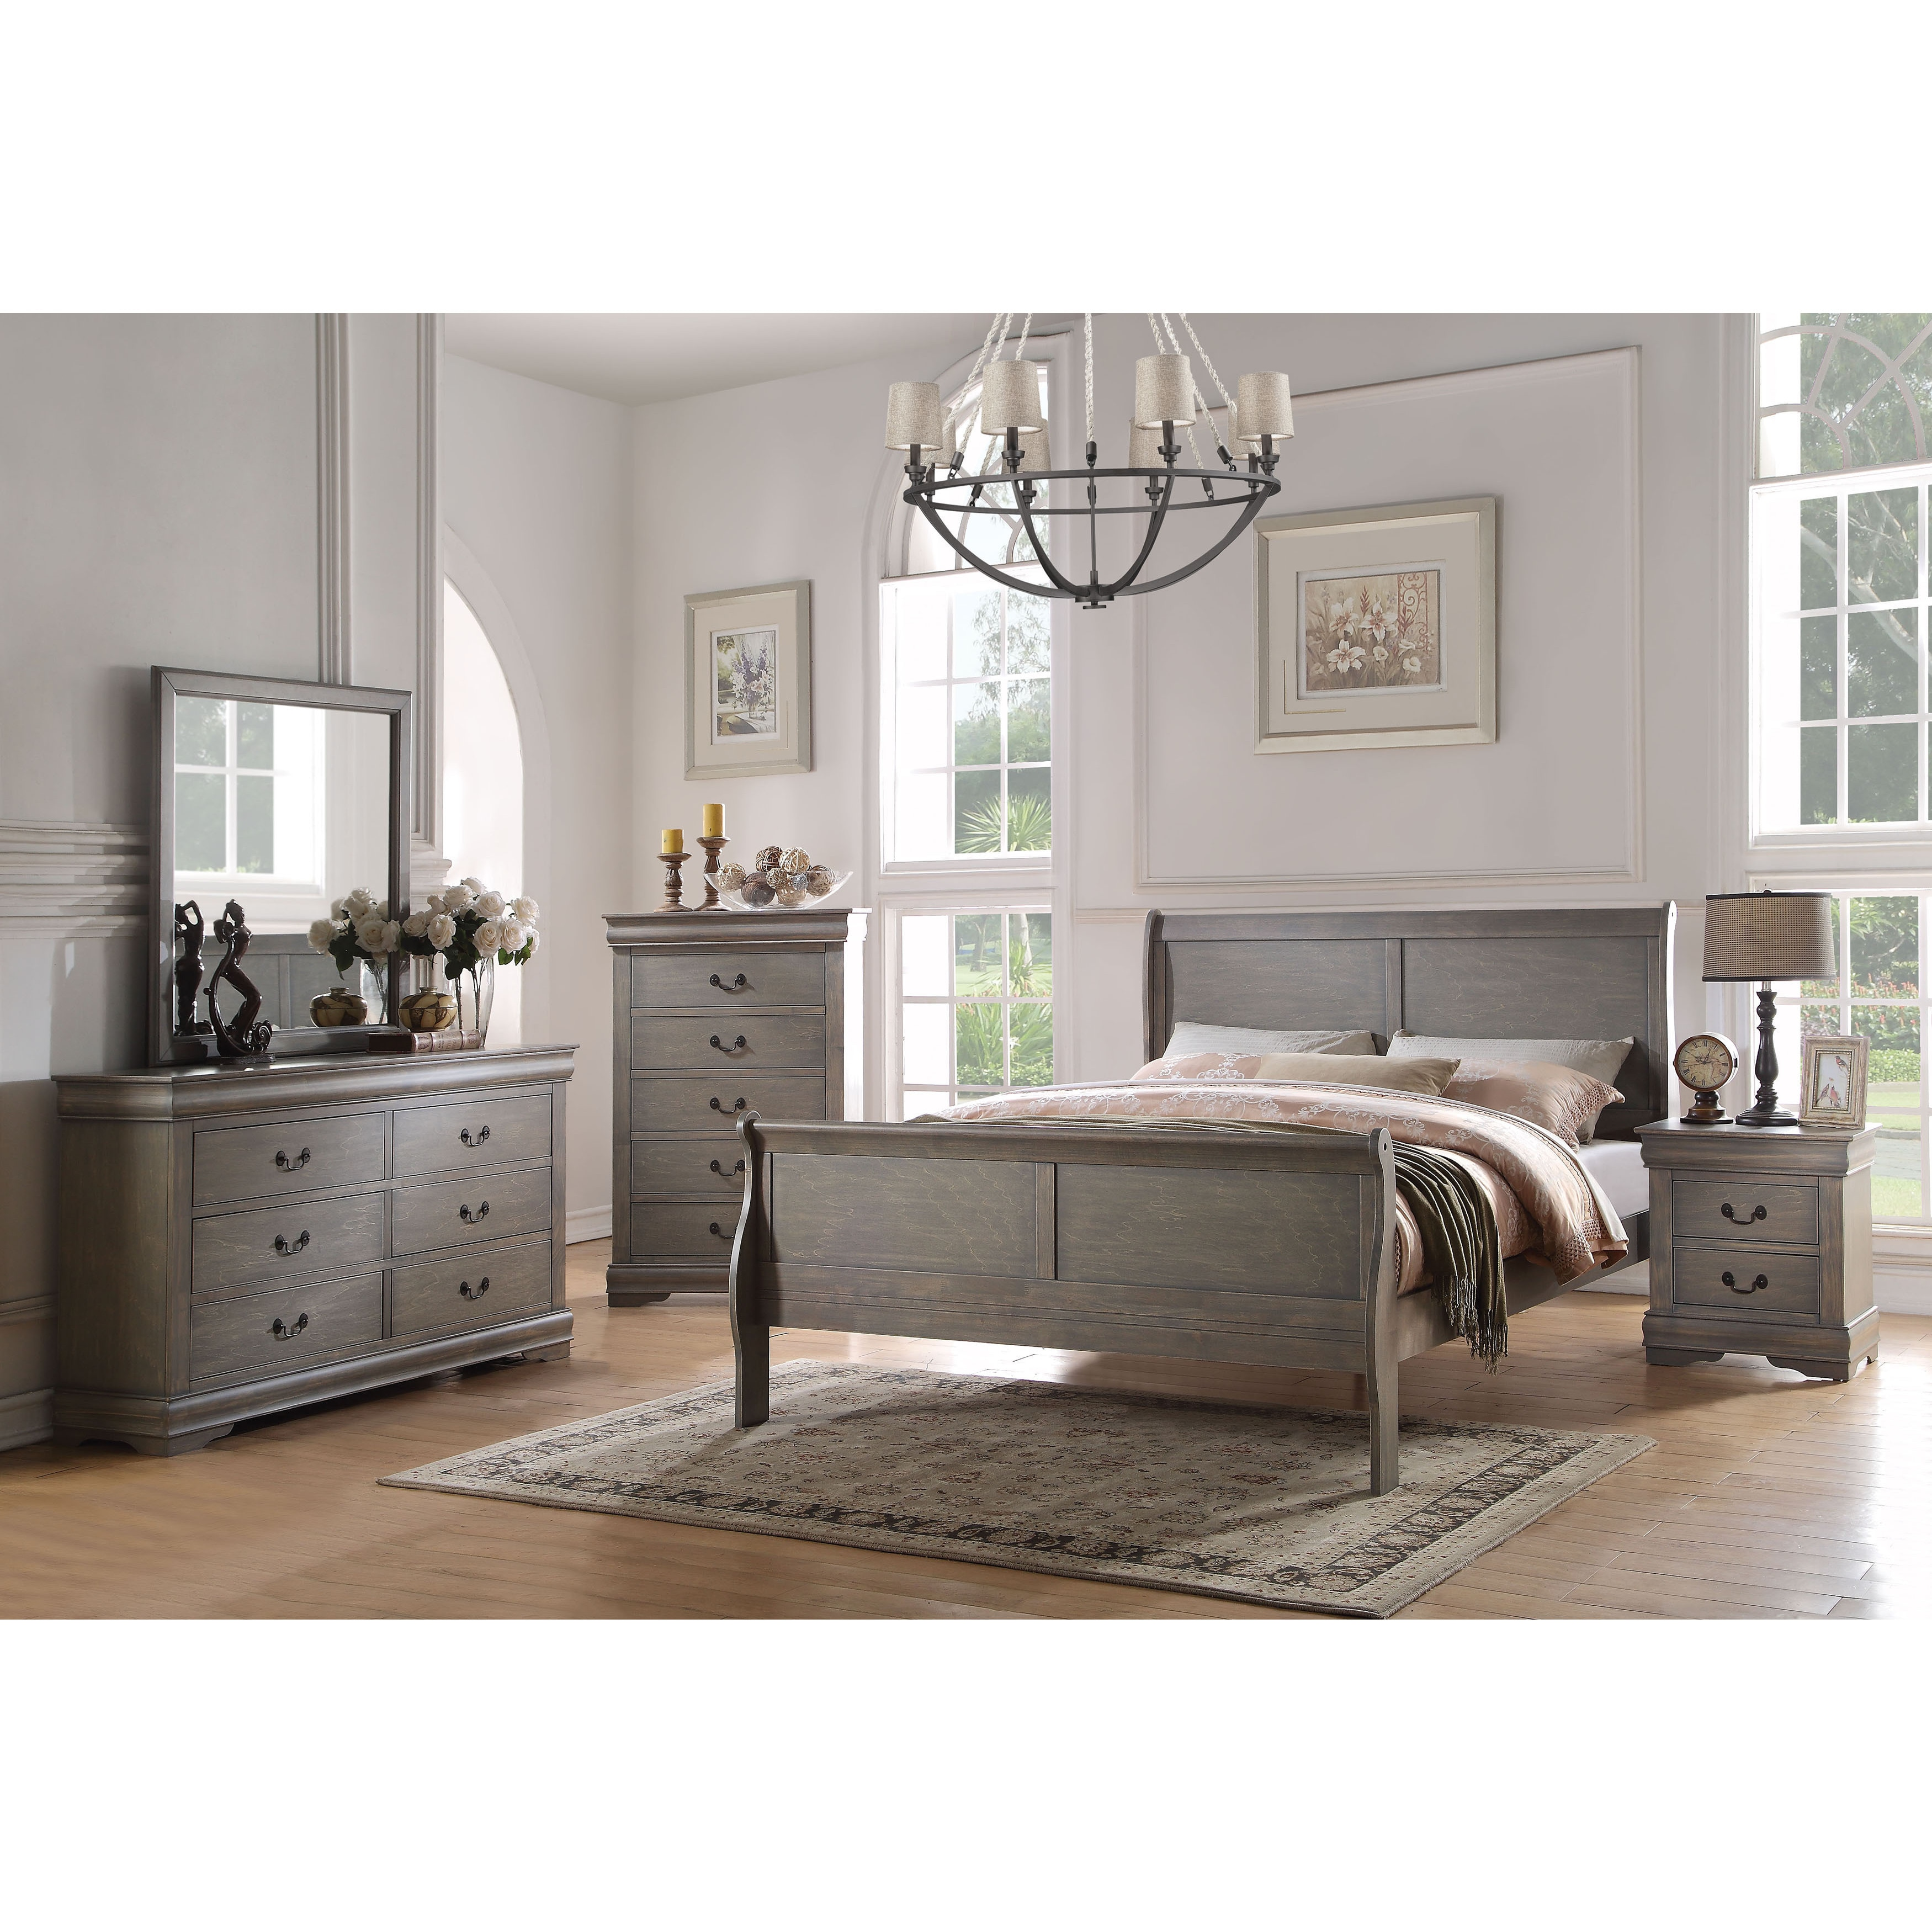 acme furniture louis philippe antique grey 4 piece sleigh 13992 | acme furniture louis philippe 4 piece sleigh bedroom set in antique gray 923a1a7f 3097 46b1 99c8 d4c9ef59f060